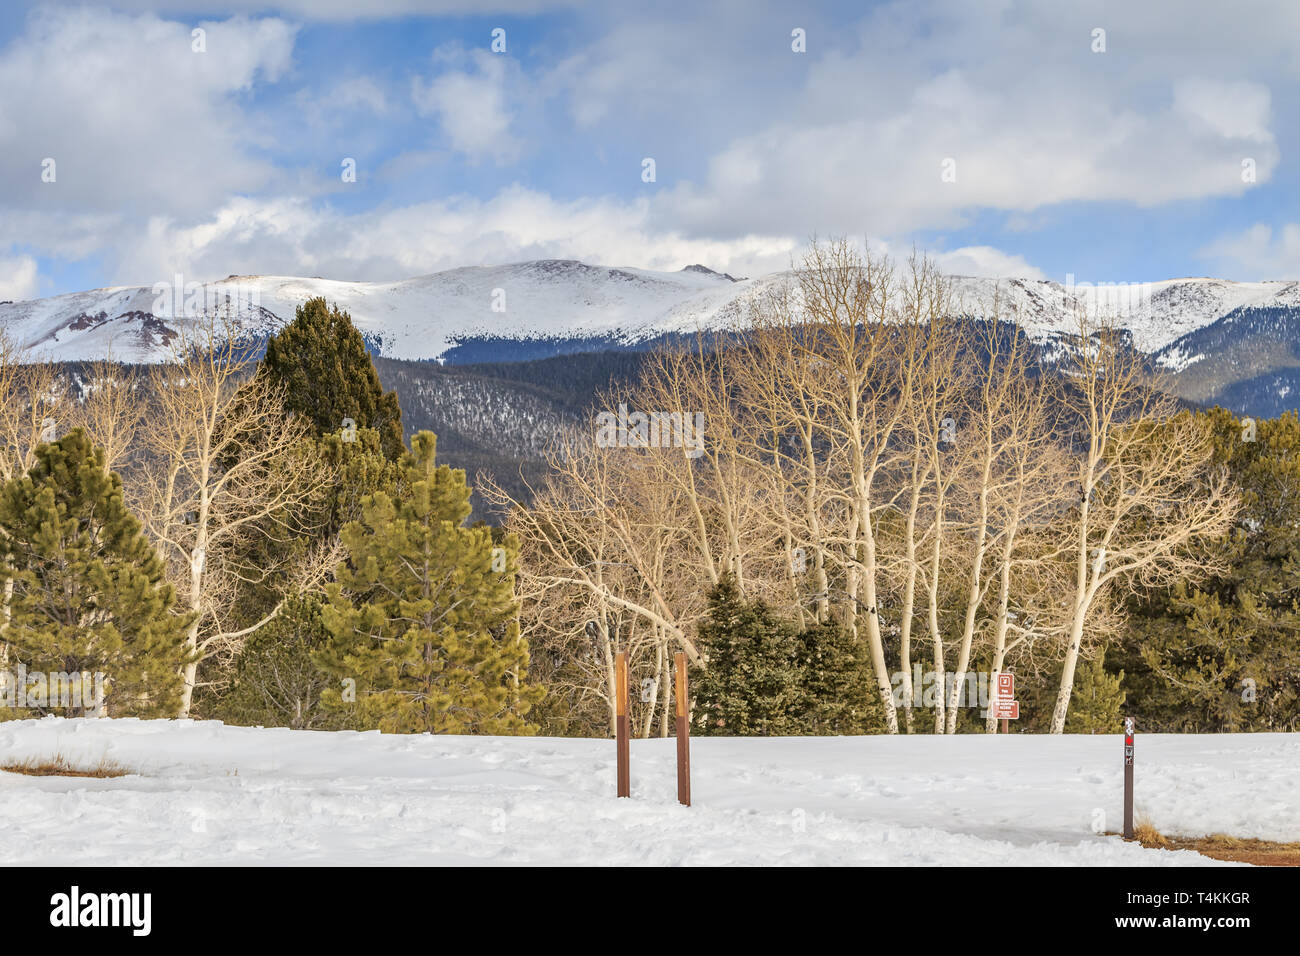 Mueller State Park (Colorado) on a snowy winter morning - Stock Image